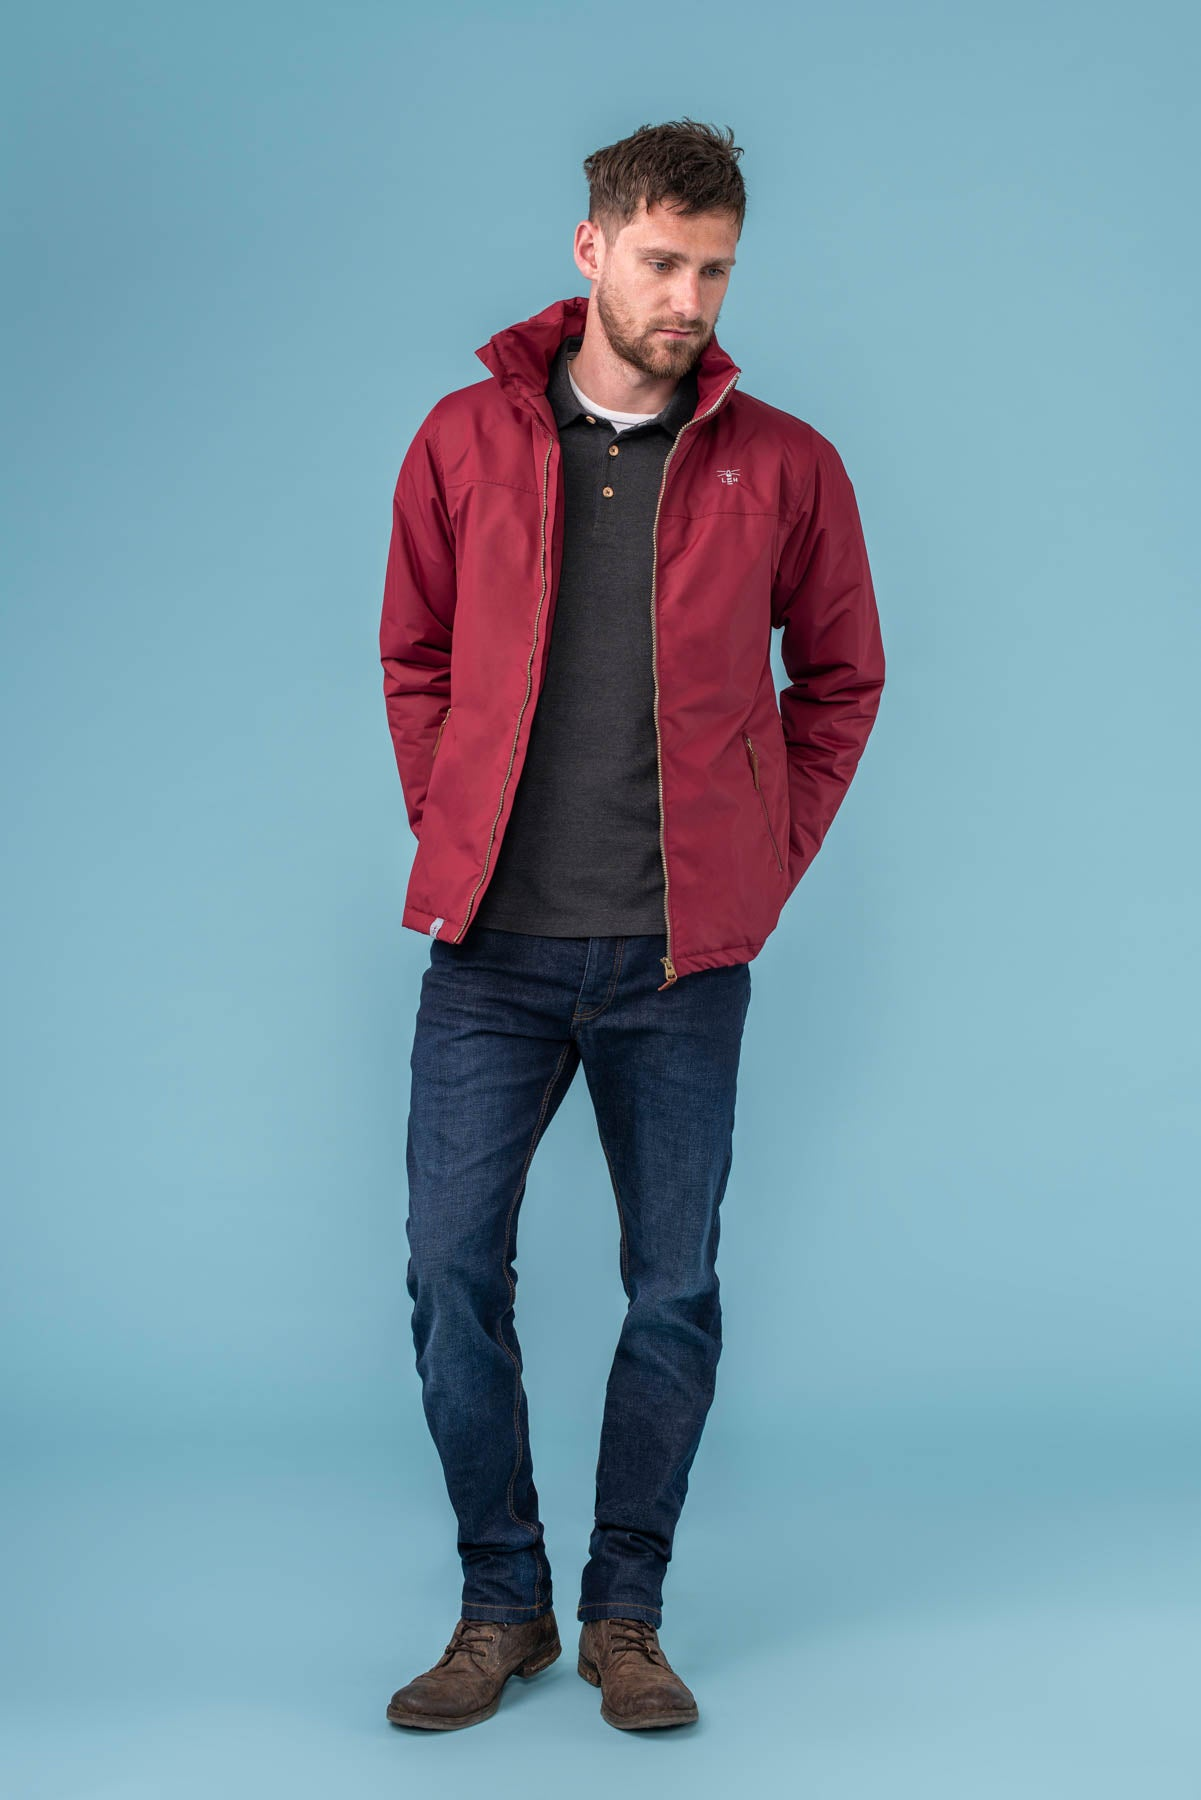 Harbour Coat - Red. Men's Warm Padded Waterproof Coat | Lighthouse